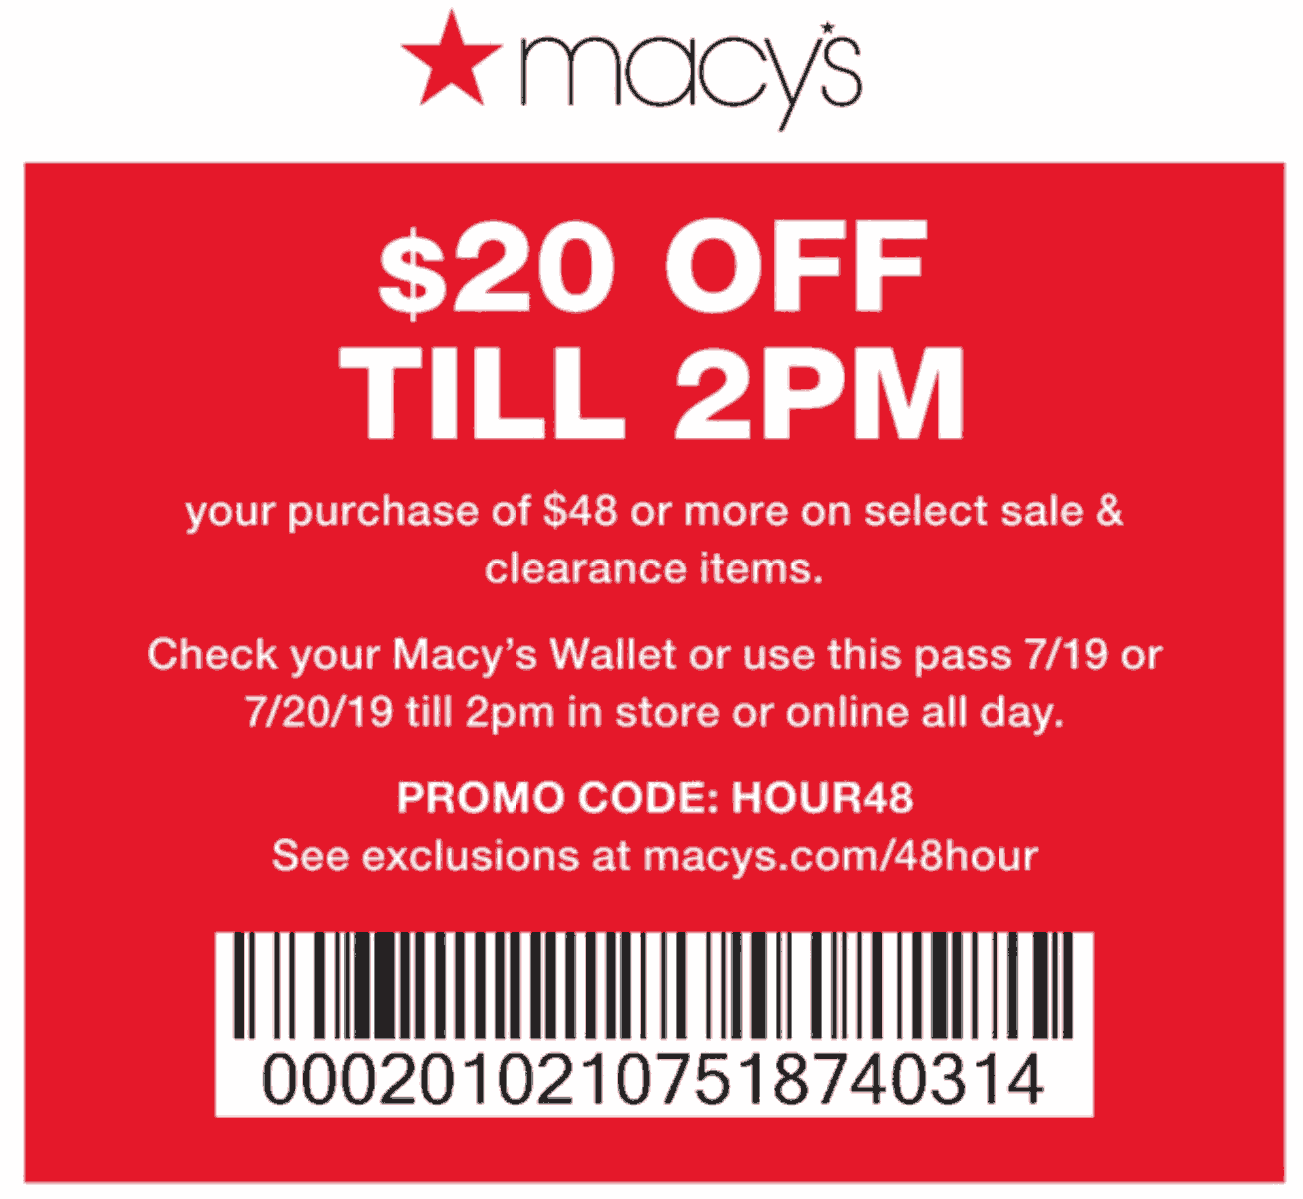 Macys Coupon November 2019 $20 off $48 til 2pm at Macys, or online via promo code HOUR48